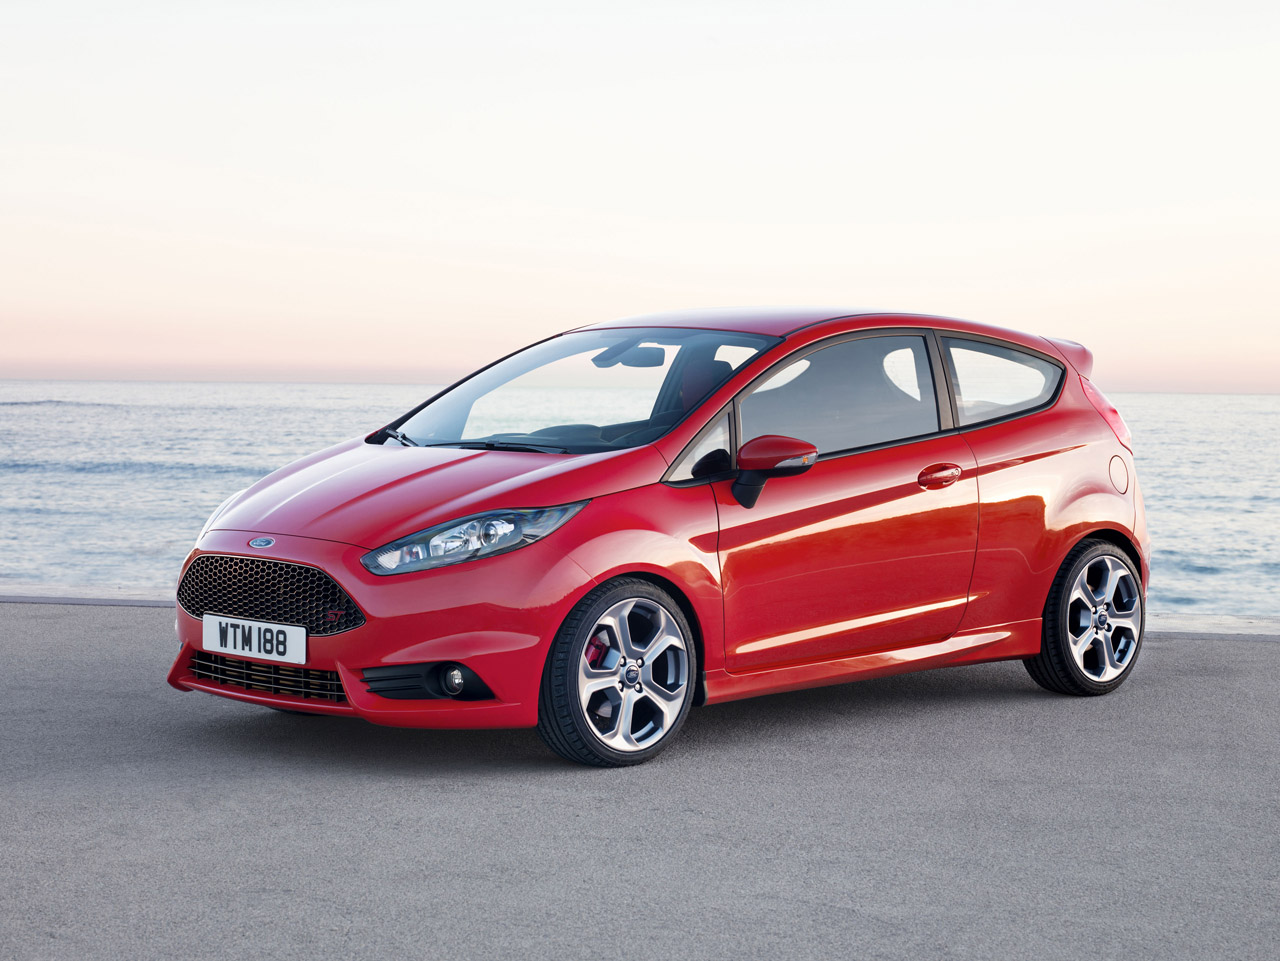 The 2013 Ford Fiesta stats